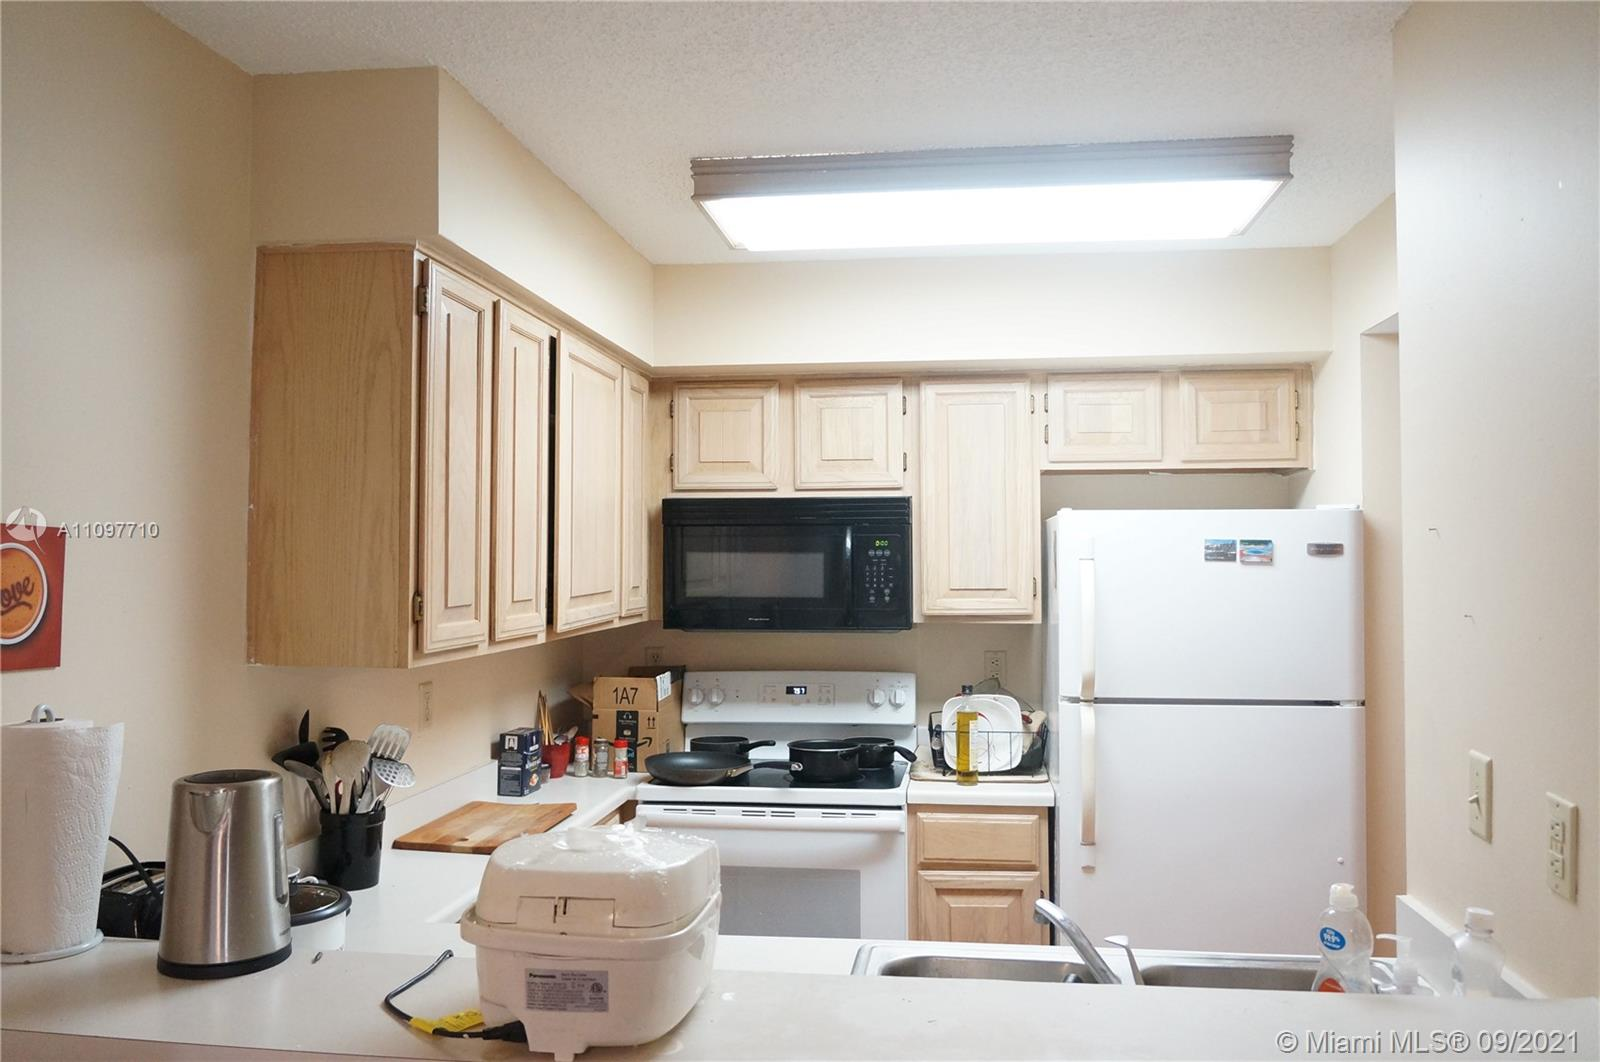 Priced to sell. Property comes with 1 garage space and 1 assigned parking + guest parking spaces.